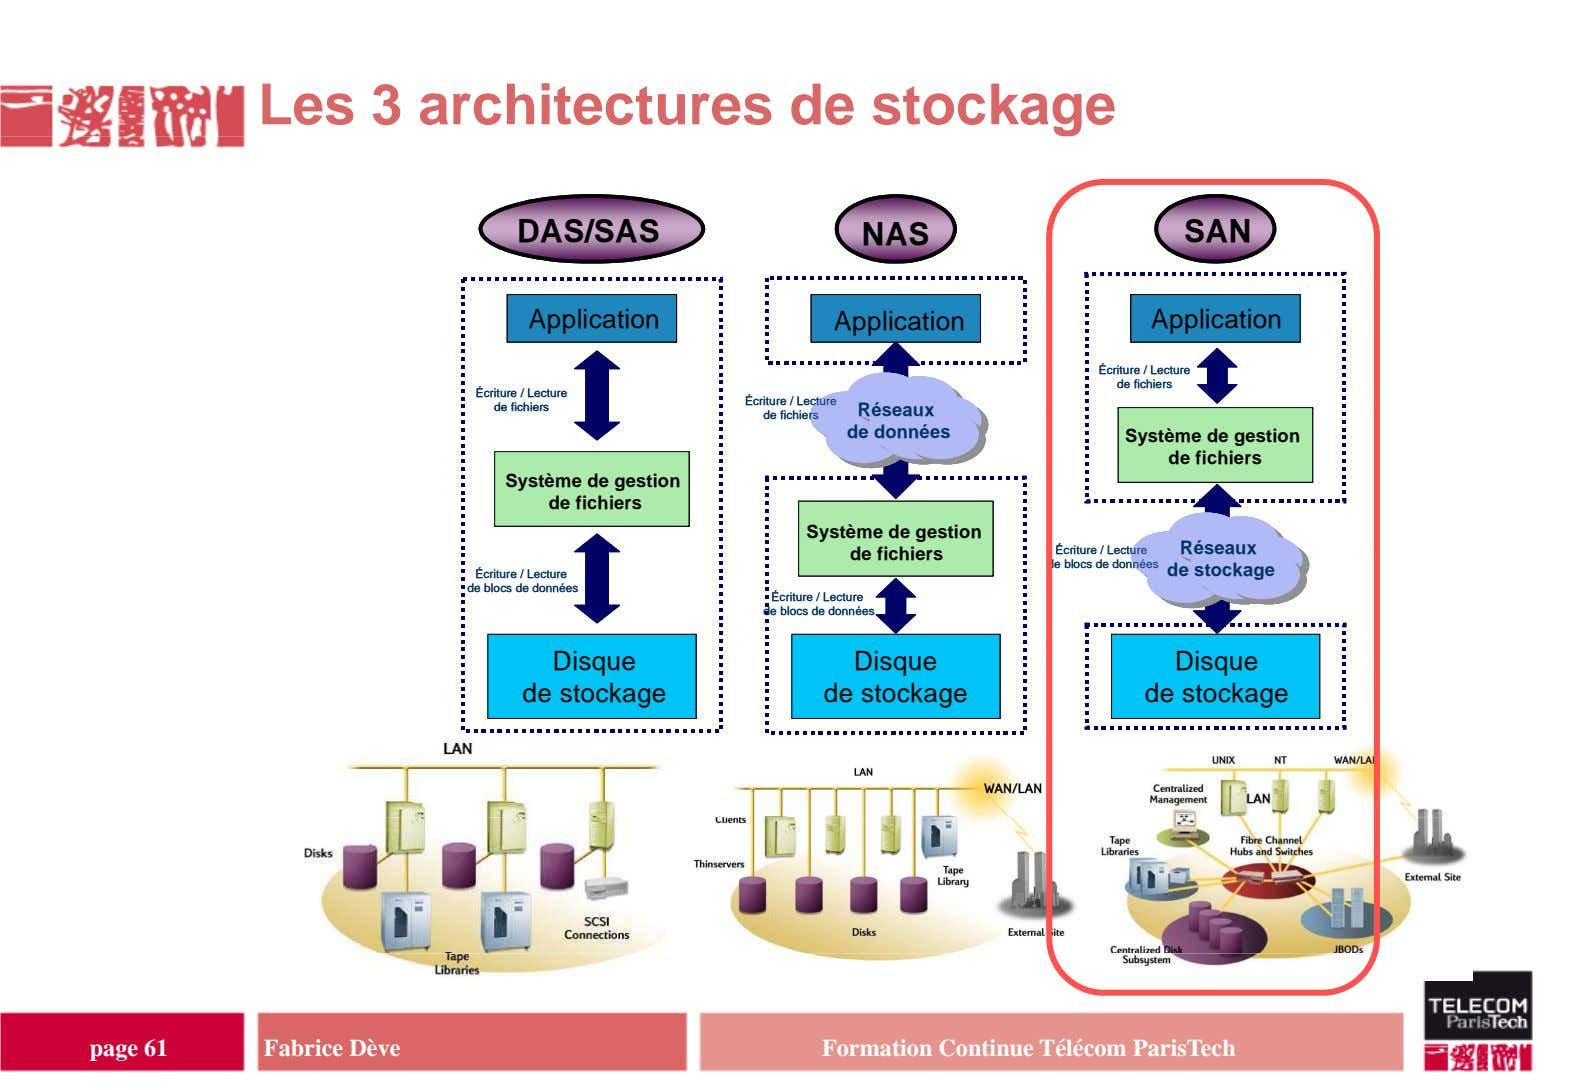 Les 3 architectures de stockage DAS/SASDAS/SAS NASNAS SANSAN ApplicationApplication Application Application